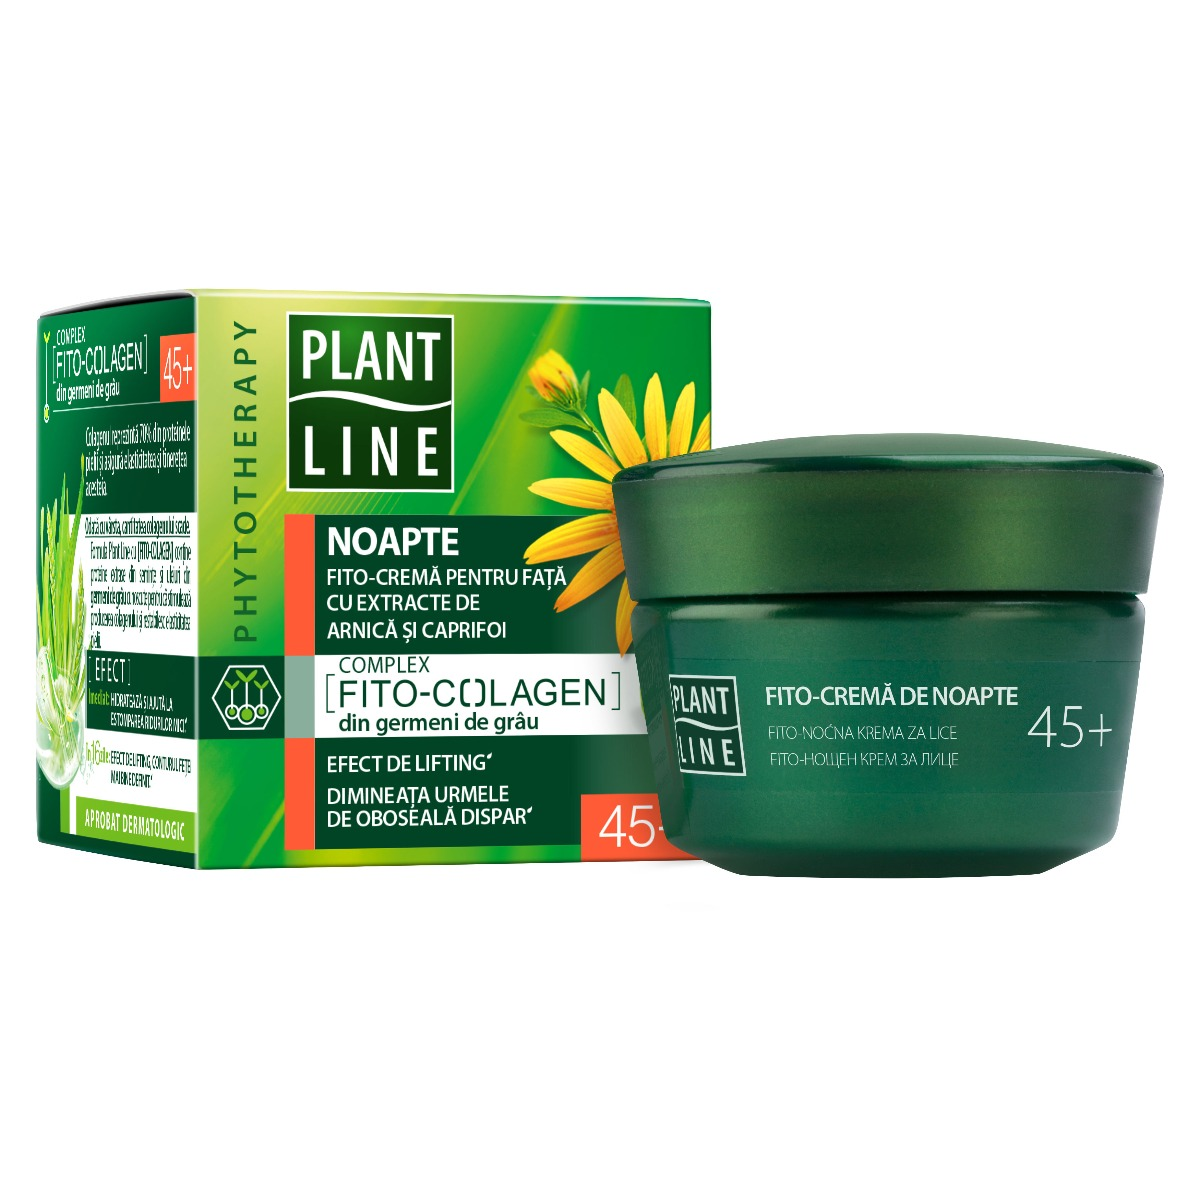 Crema de noapte Plant Line Arnica, 45+, 45 ml imagine 2021